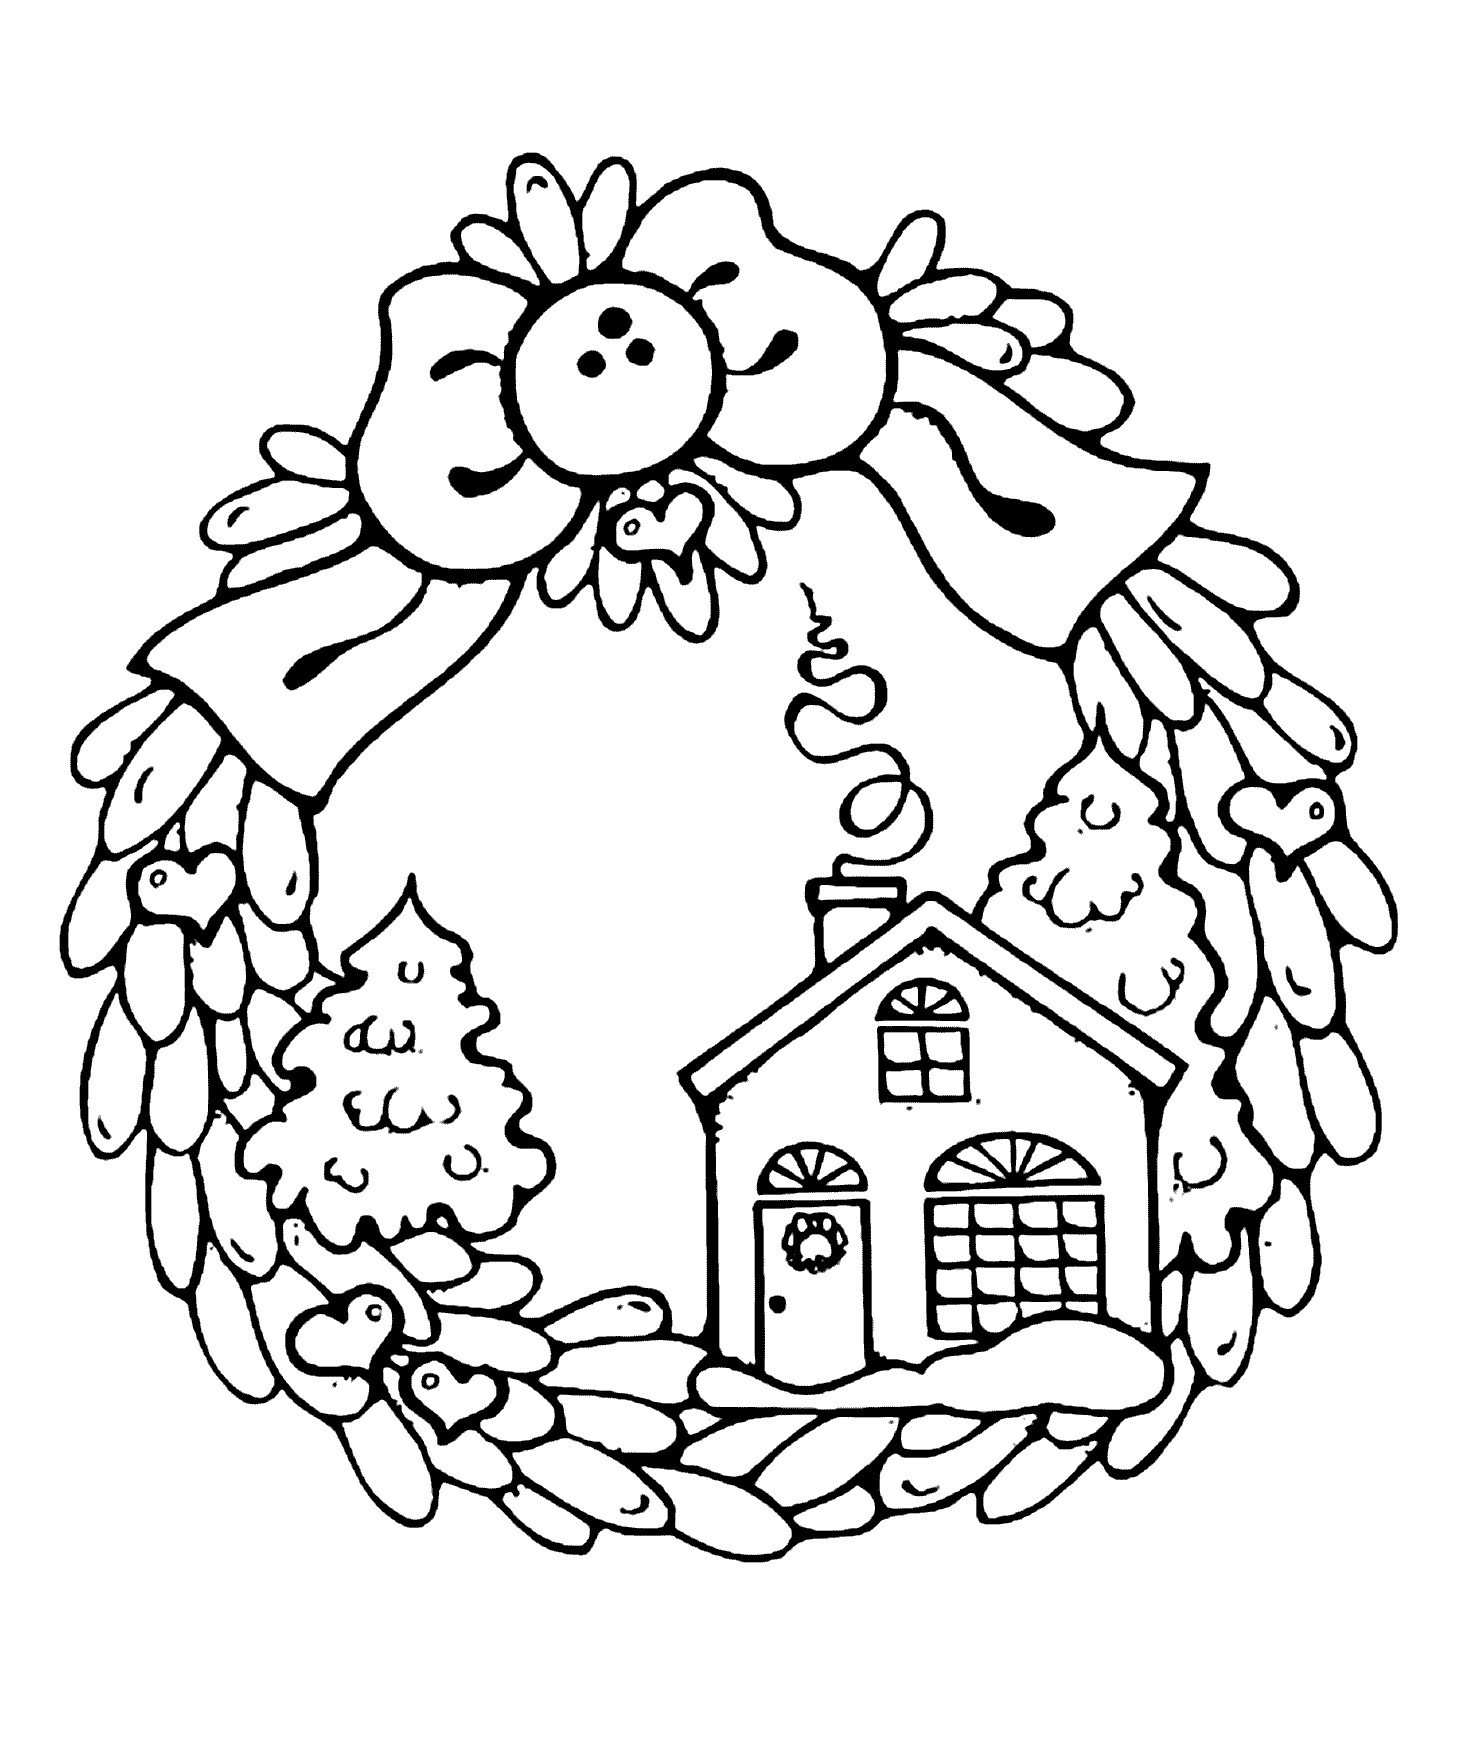 nativity coloring pages for preschool, free advent printables, christmas coloring pages, advent wreath coloring pages, advent wreath coloring page pdf, advent for kids, advent activity pages